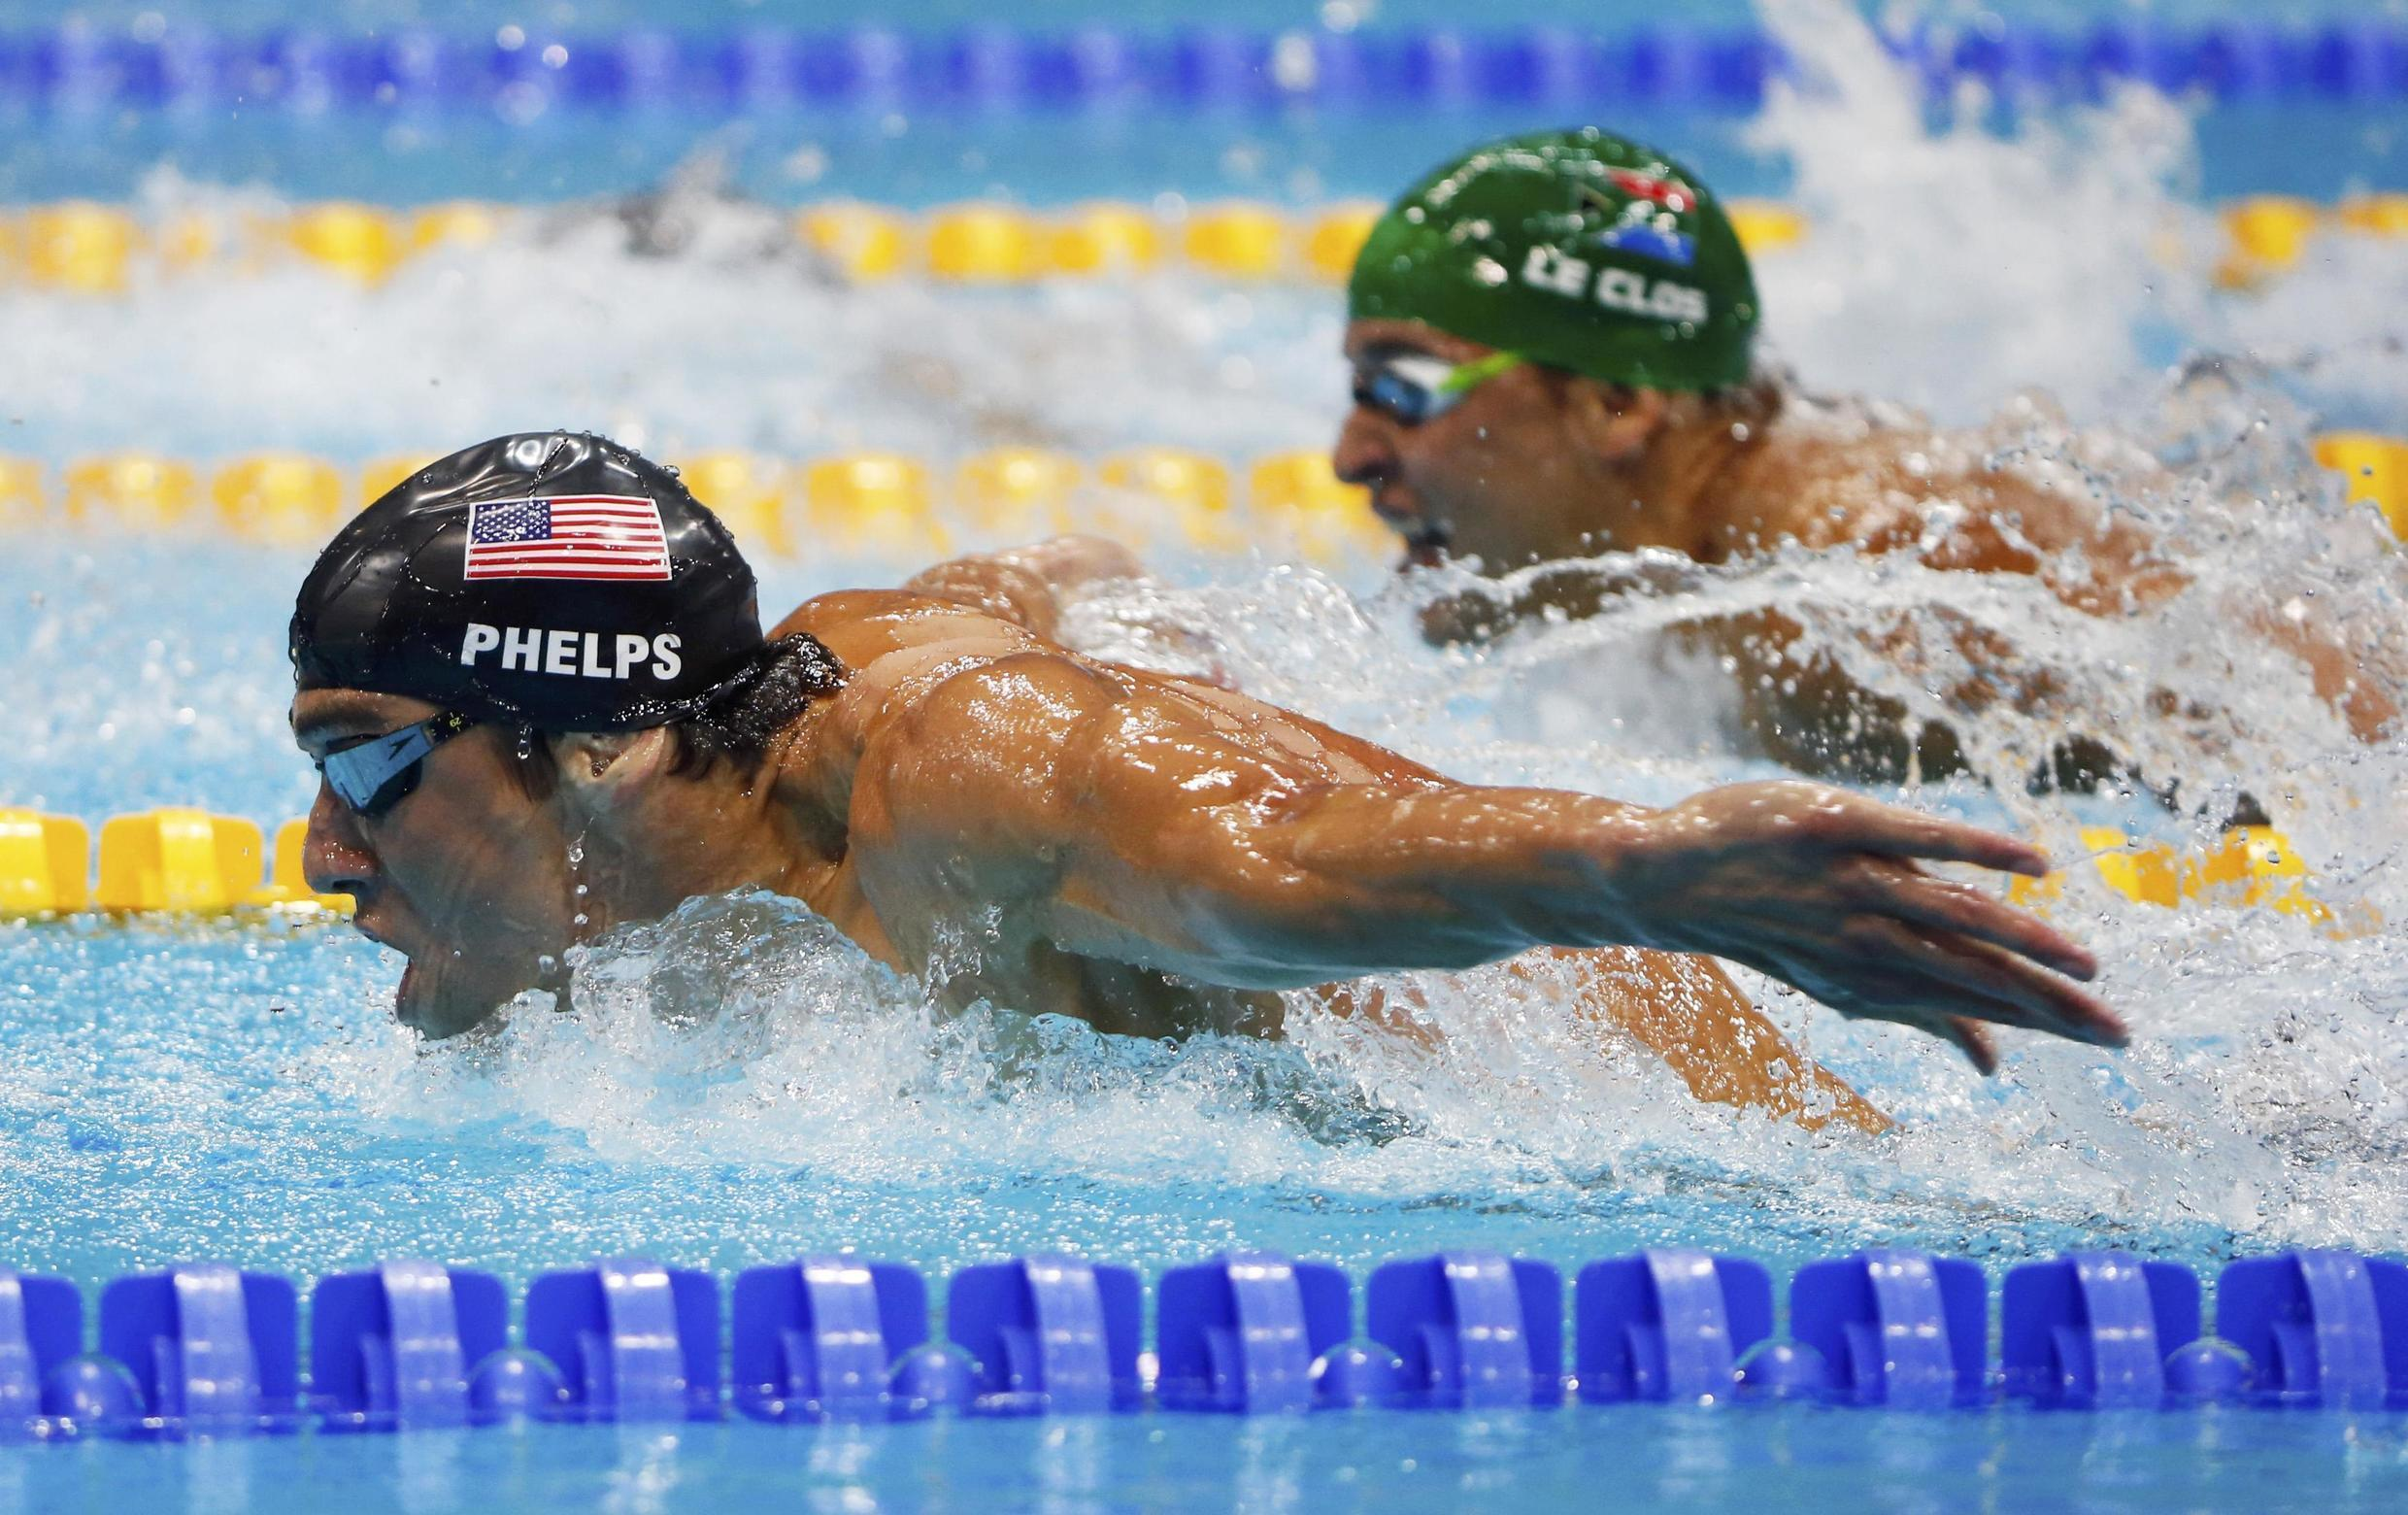 Michael Phelps swims with Chad le Clos during their men's 200m butterfly final, 31 July, 2012